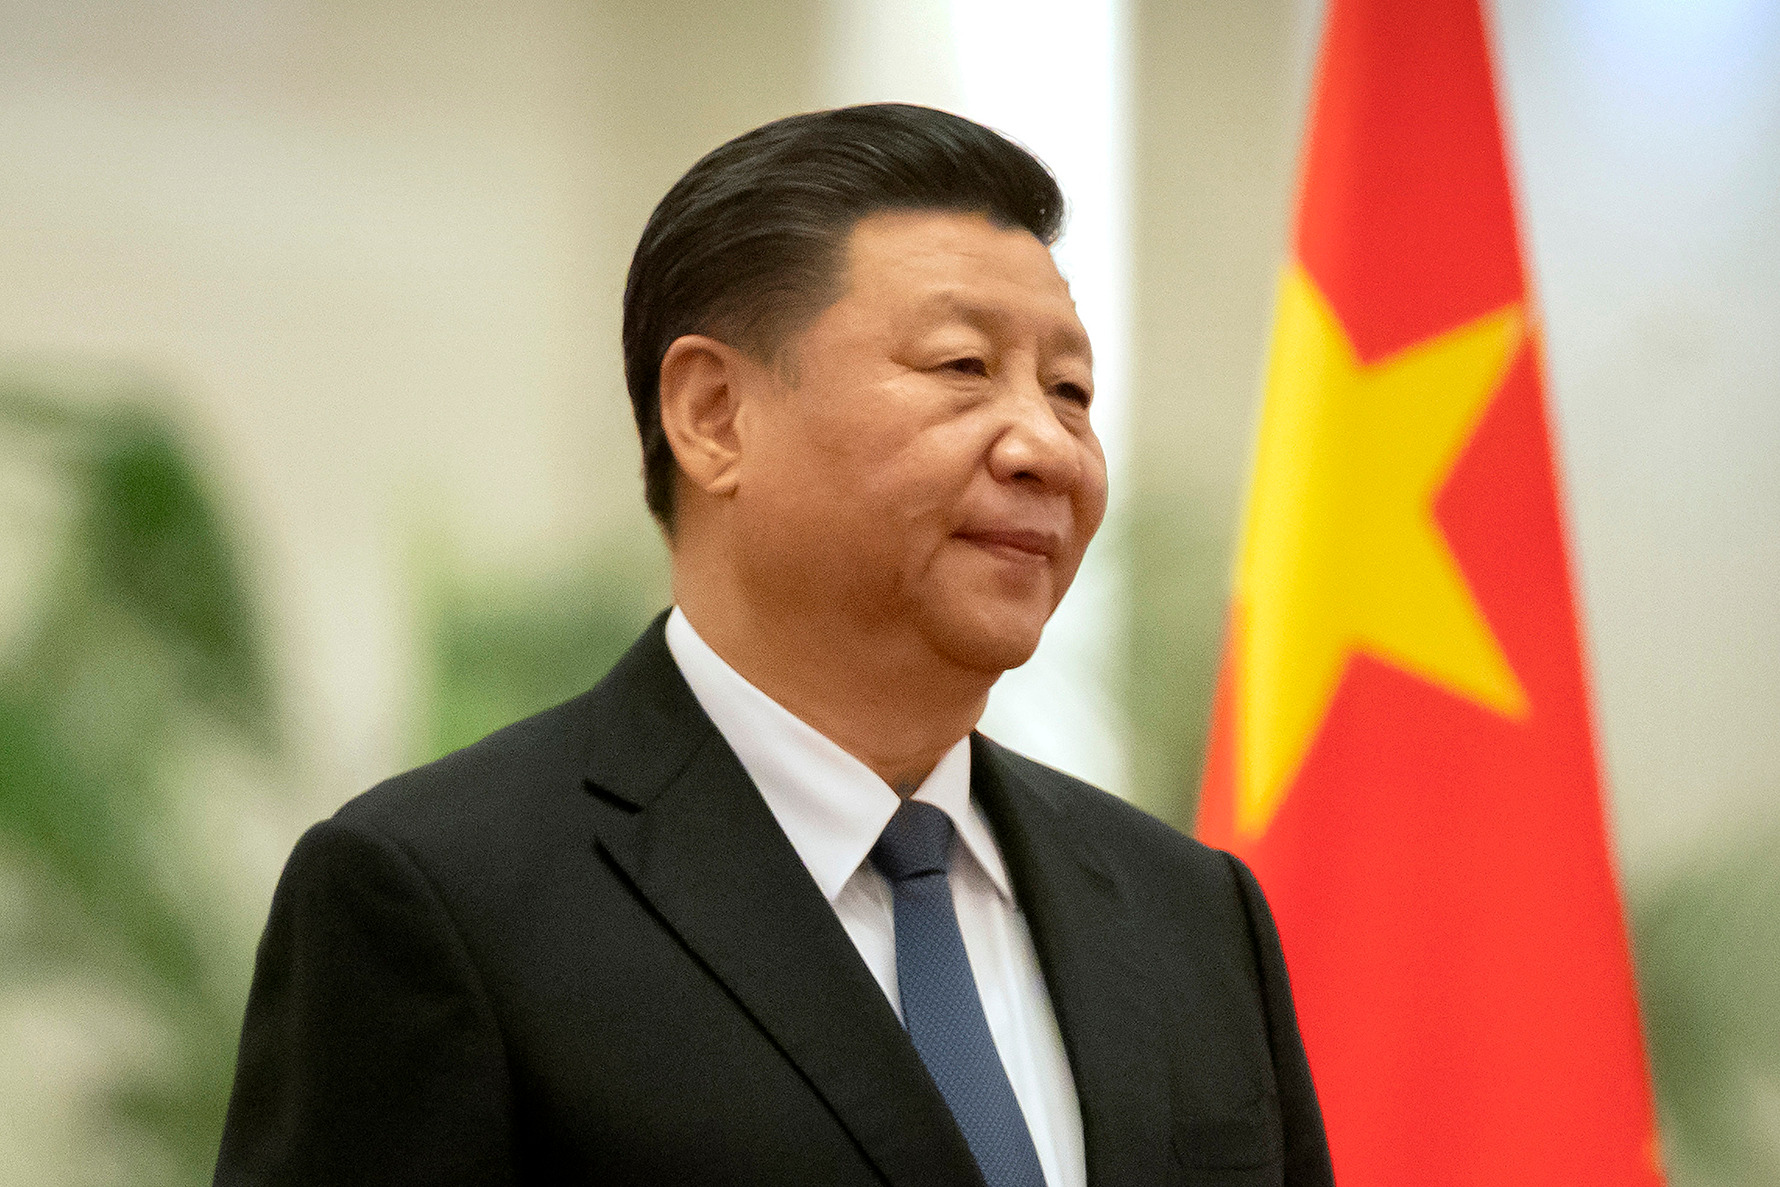 Chinese President's humiliating moment